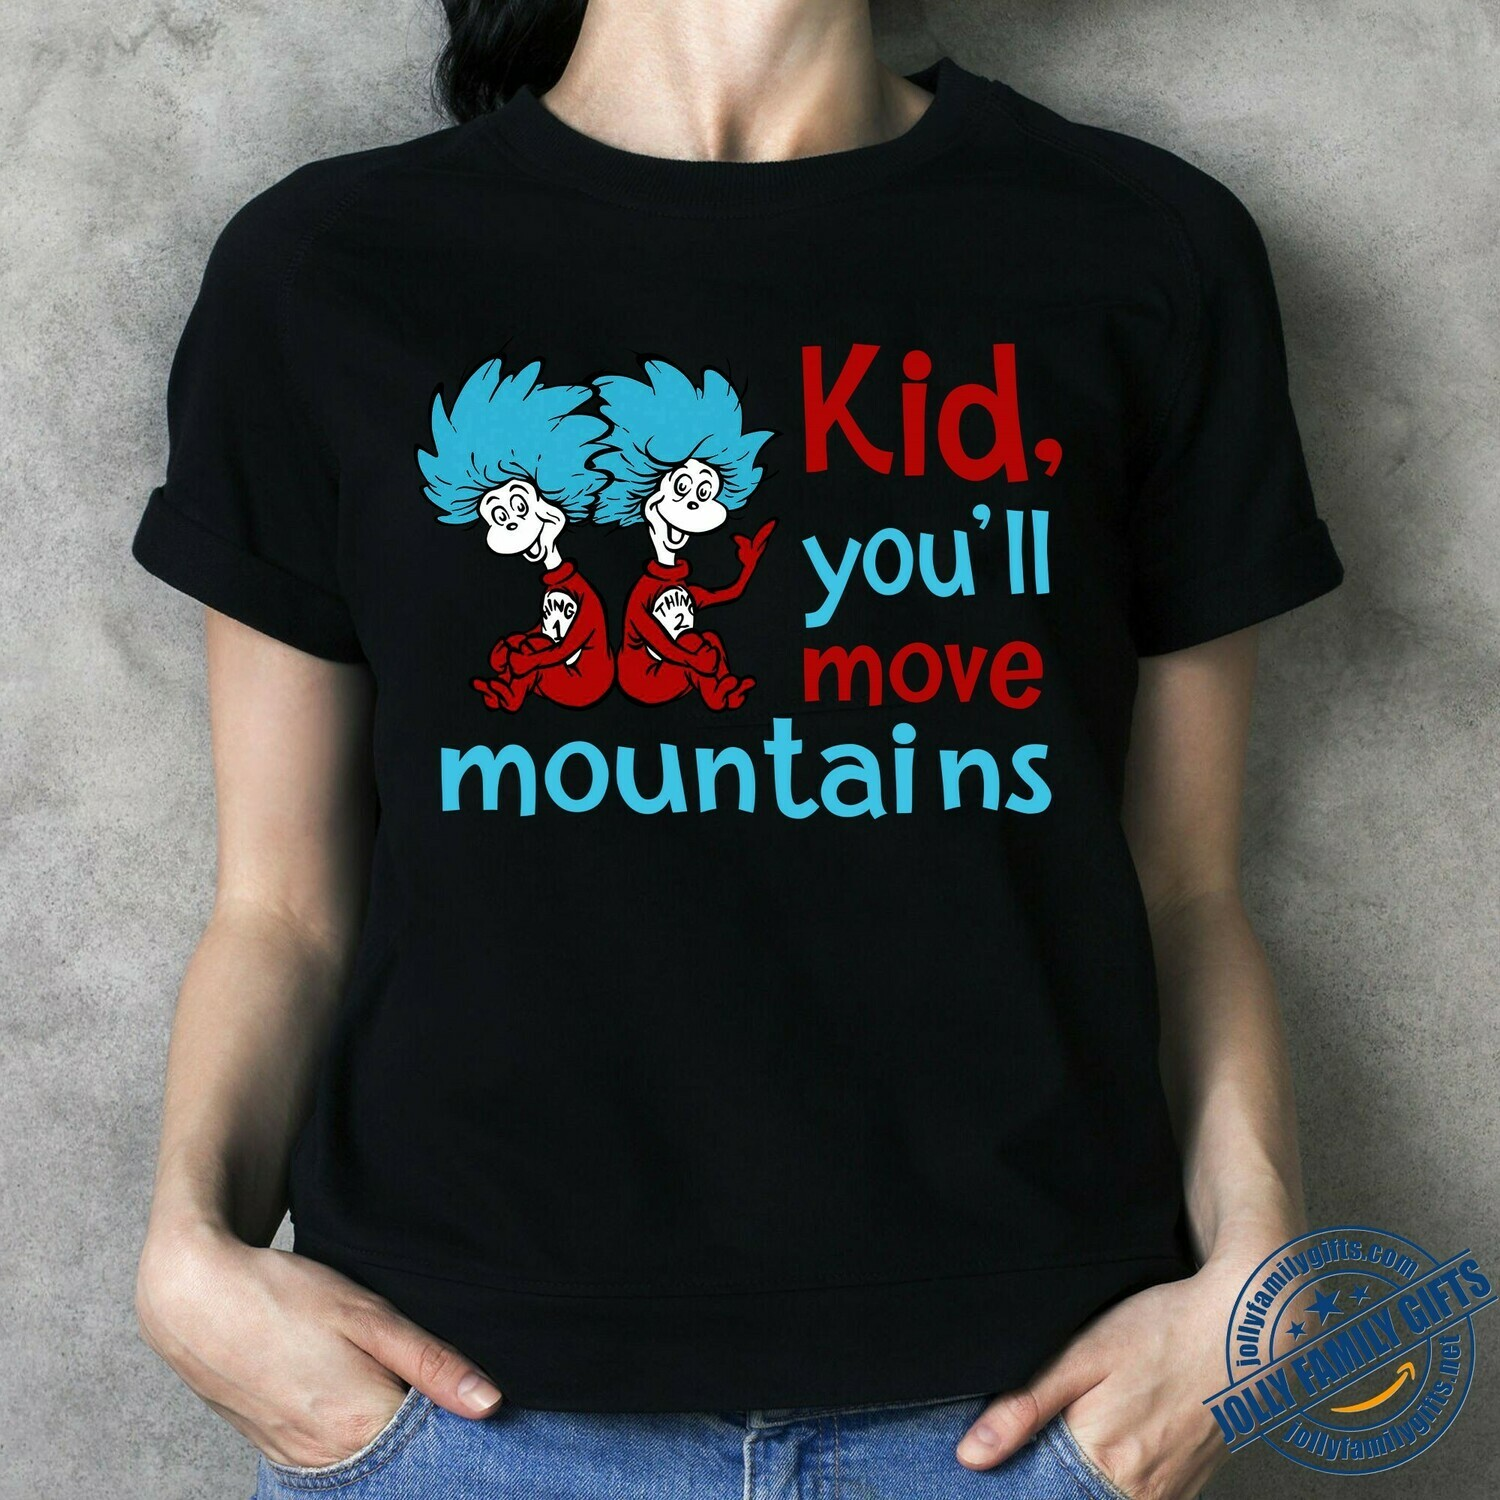 ,you will move mountains! Today is your day! Dr. Seuss Inspired Quote for Men Women National Read Across America Day Unisex T-Shirt Hoodie Sweatshirt Sweater Plus Size for Ladies Women Men Kids Youth